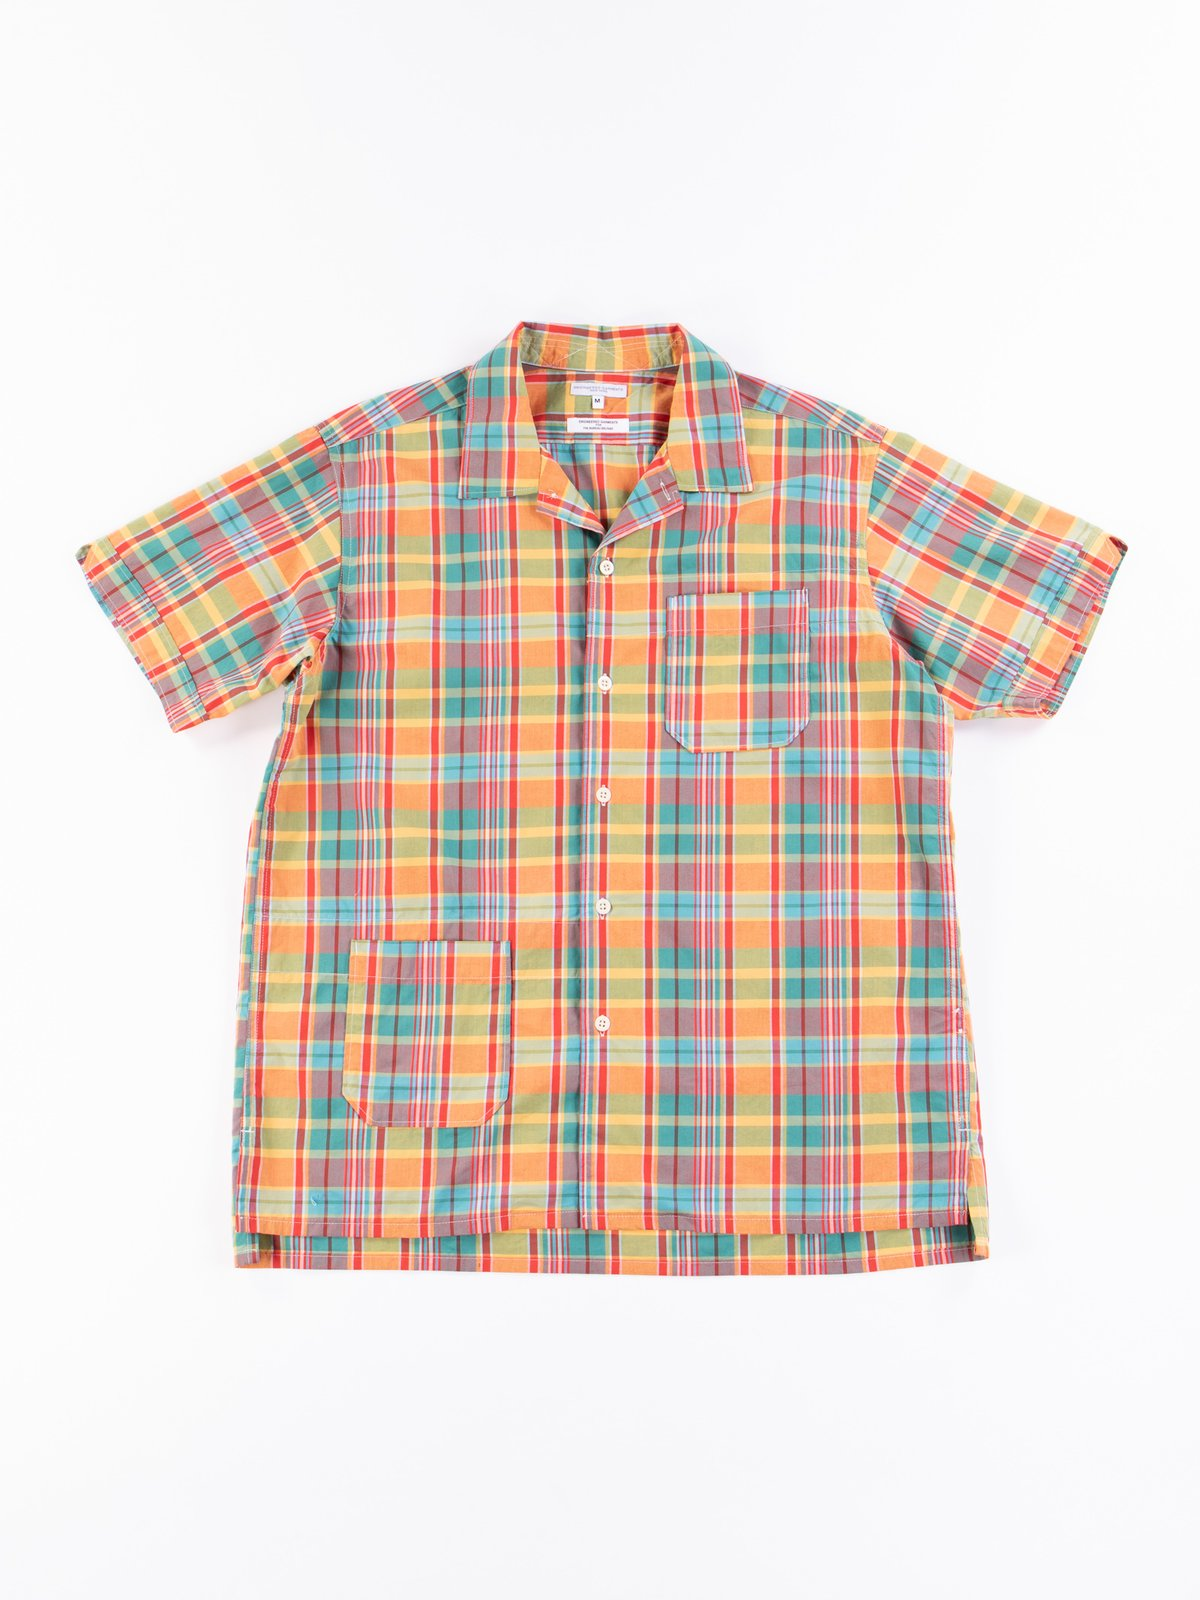 Orange Plaid Cotton Broadcloth Camp Shirt - Image 1